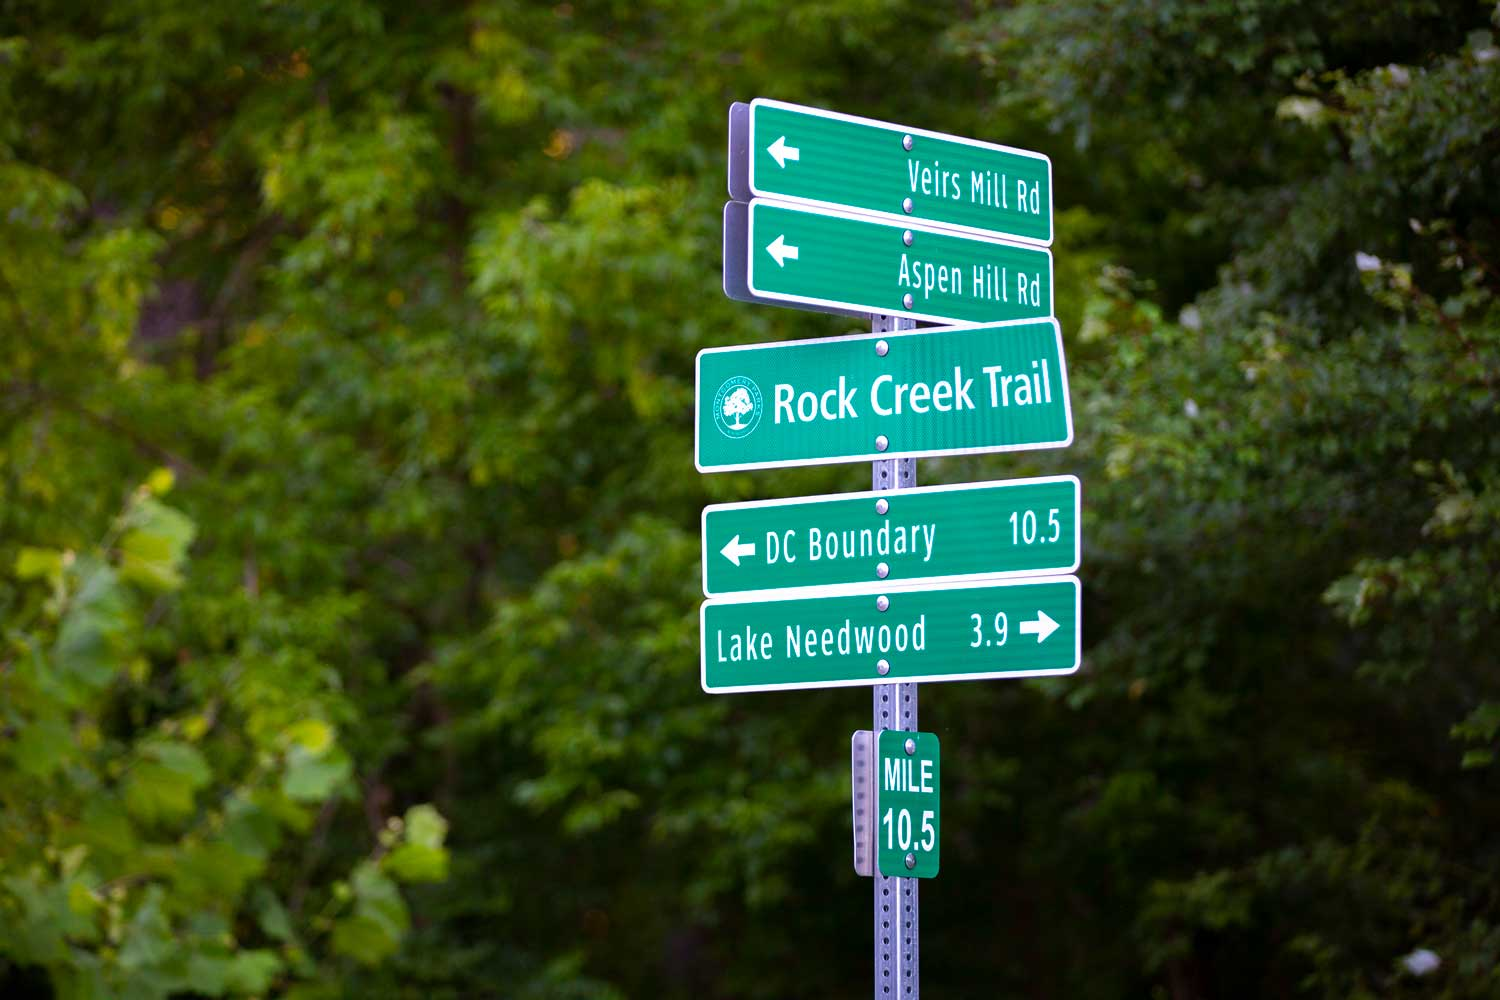 Rock Creek Trail is 5 minutes from Village Square West Apartments